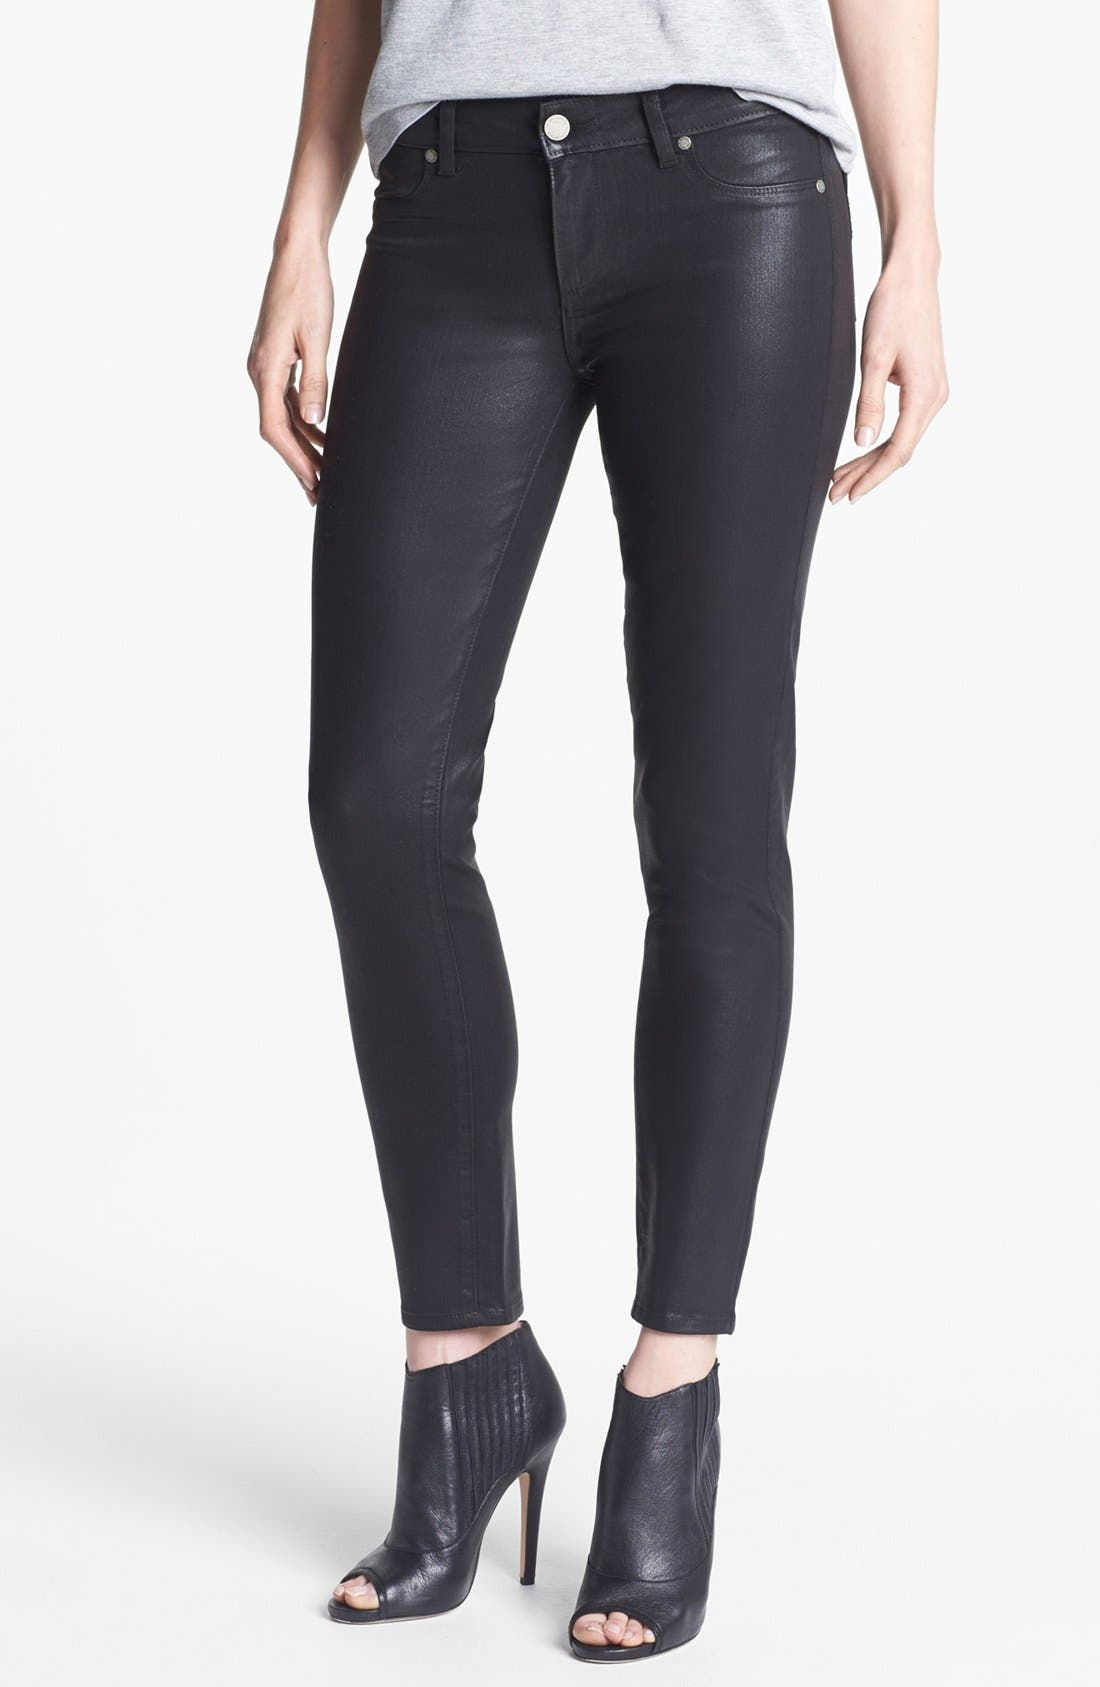 Alternate Image 1 Selected - Paige Denim 'Verdugo' Ankle Coated Skinny Jeans (Black Silk)